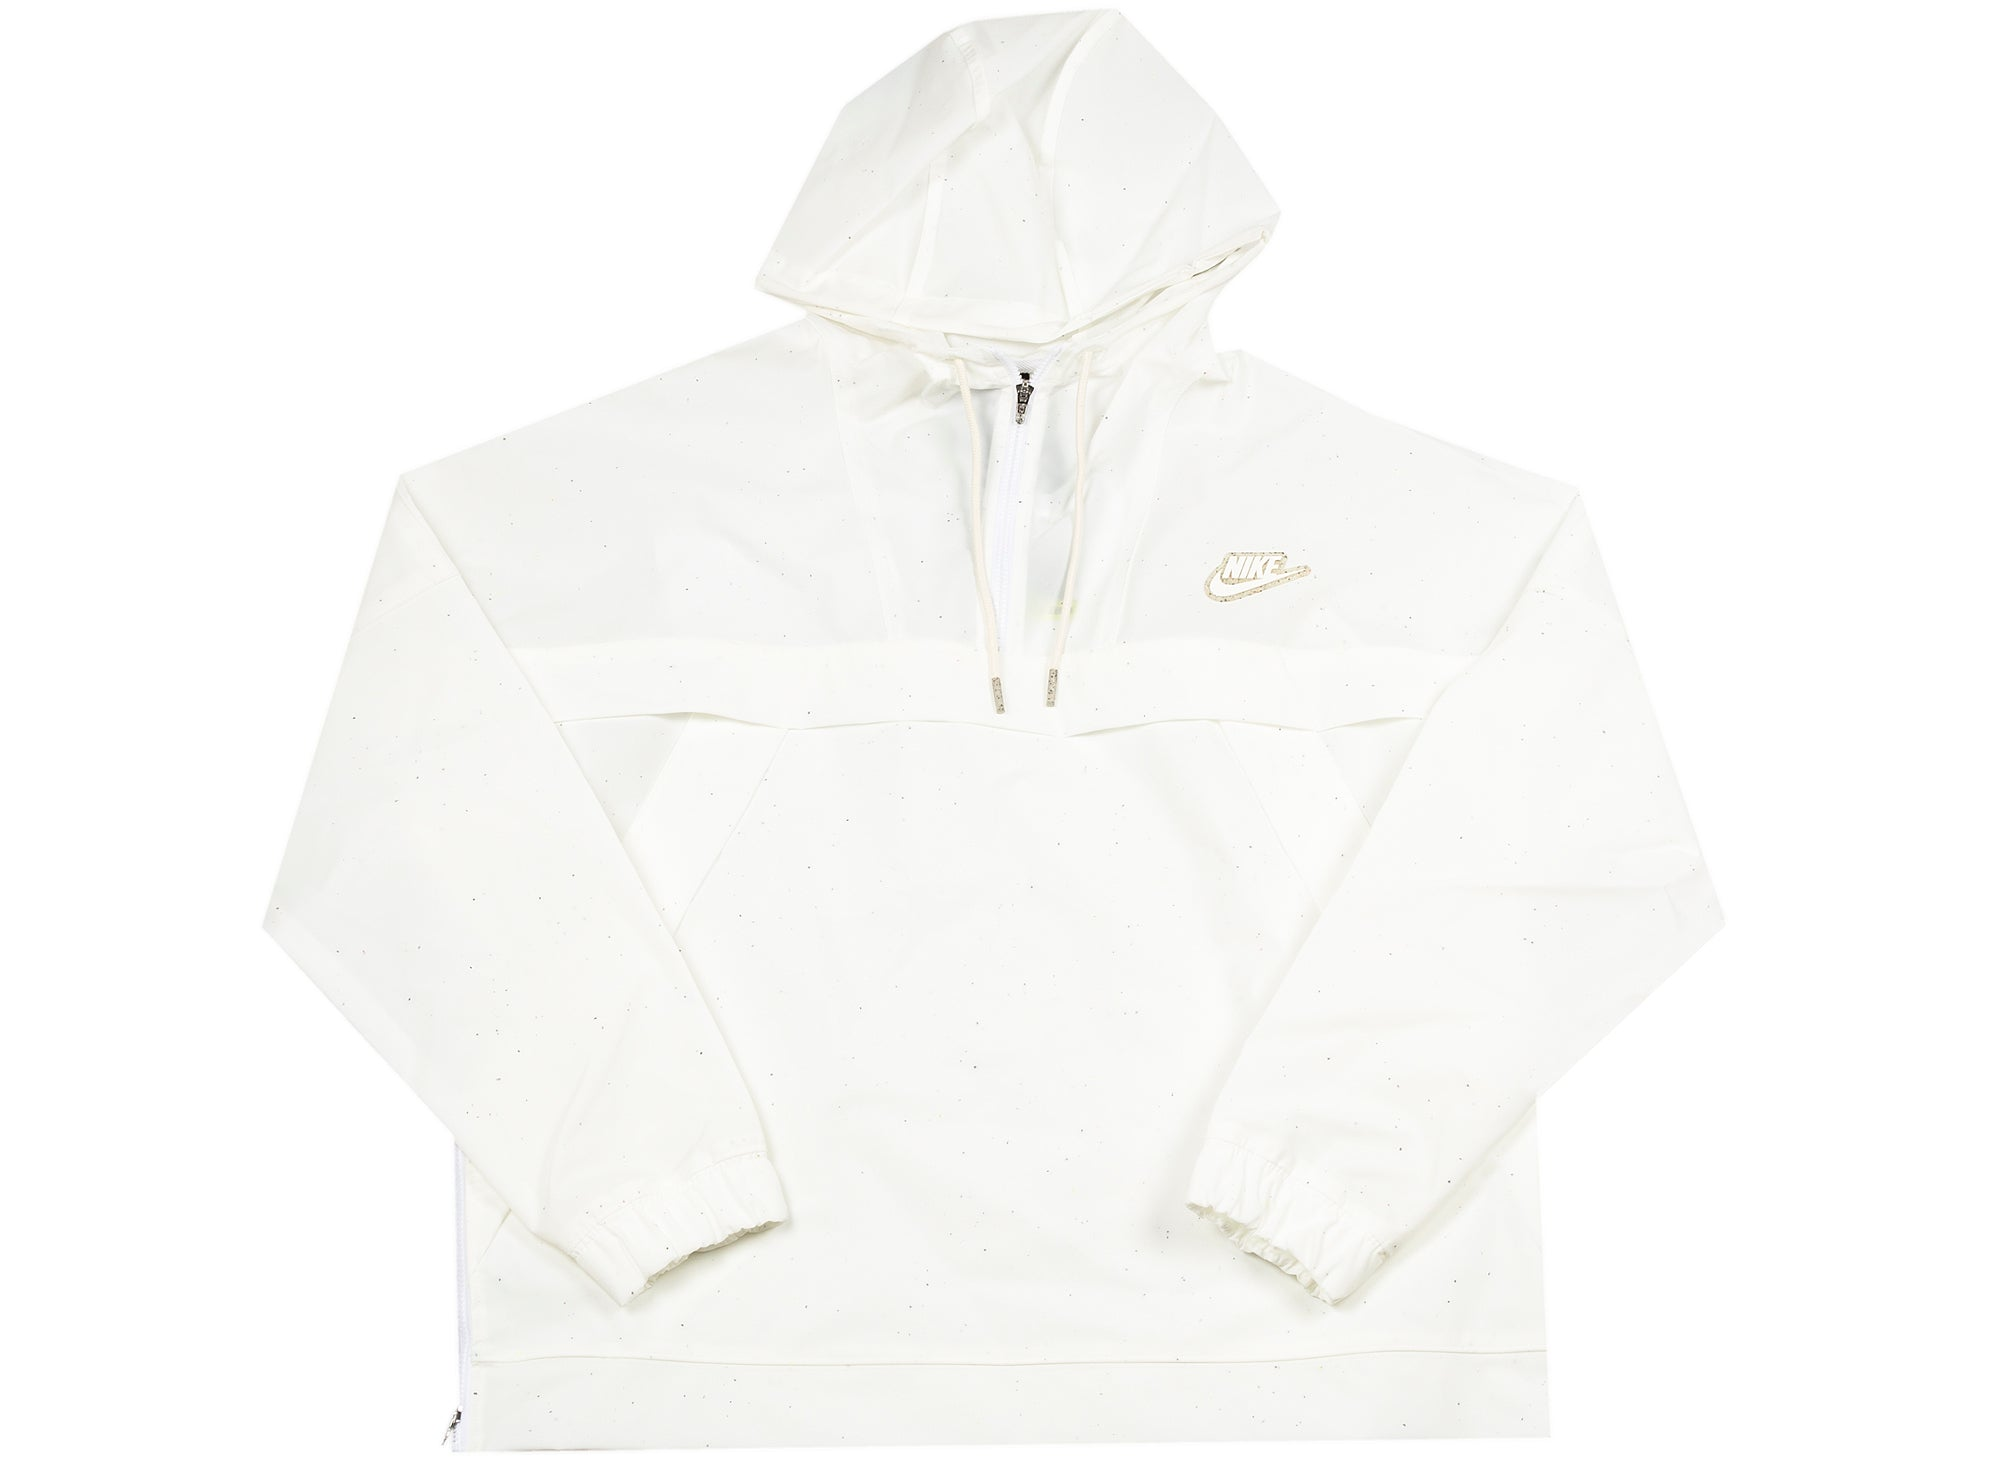 Women's Nike Sportswear Anorak Jacket in White xld